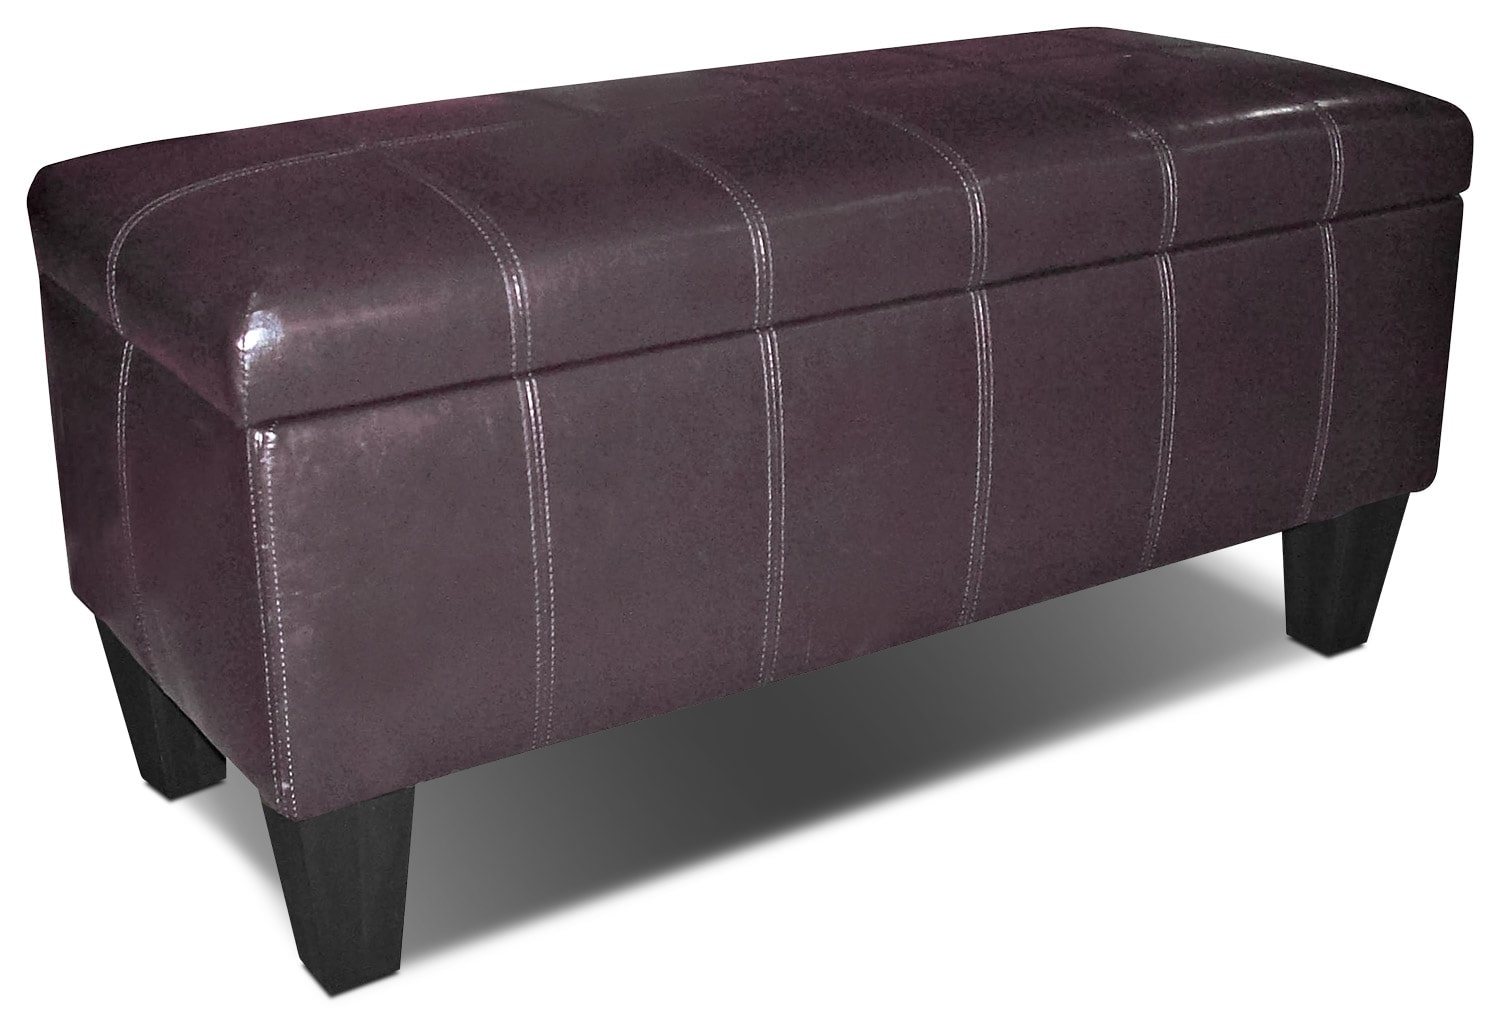 Living Room Furniture - Jackson Storage Ottoman - Brown